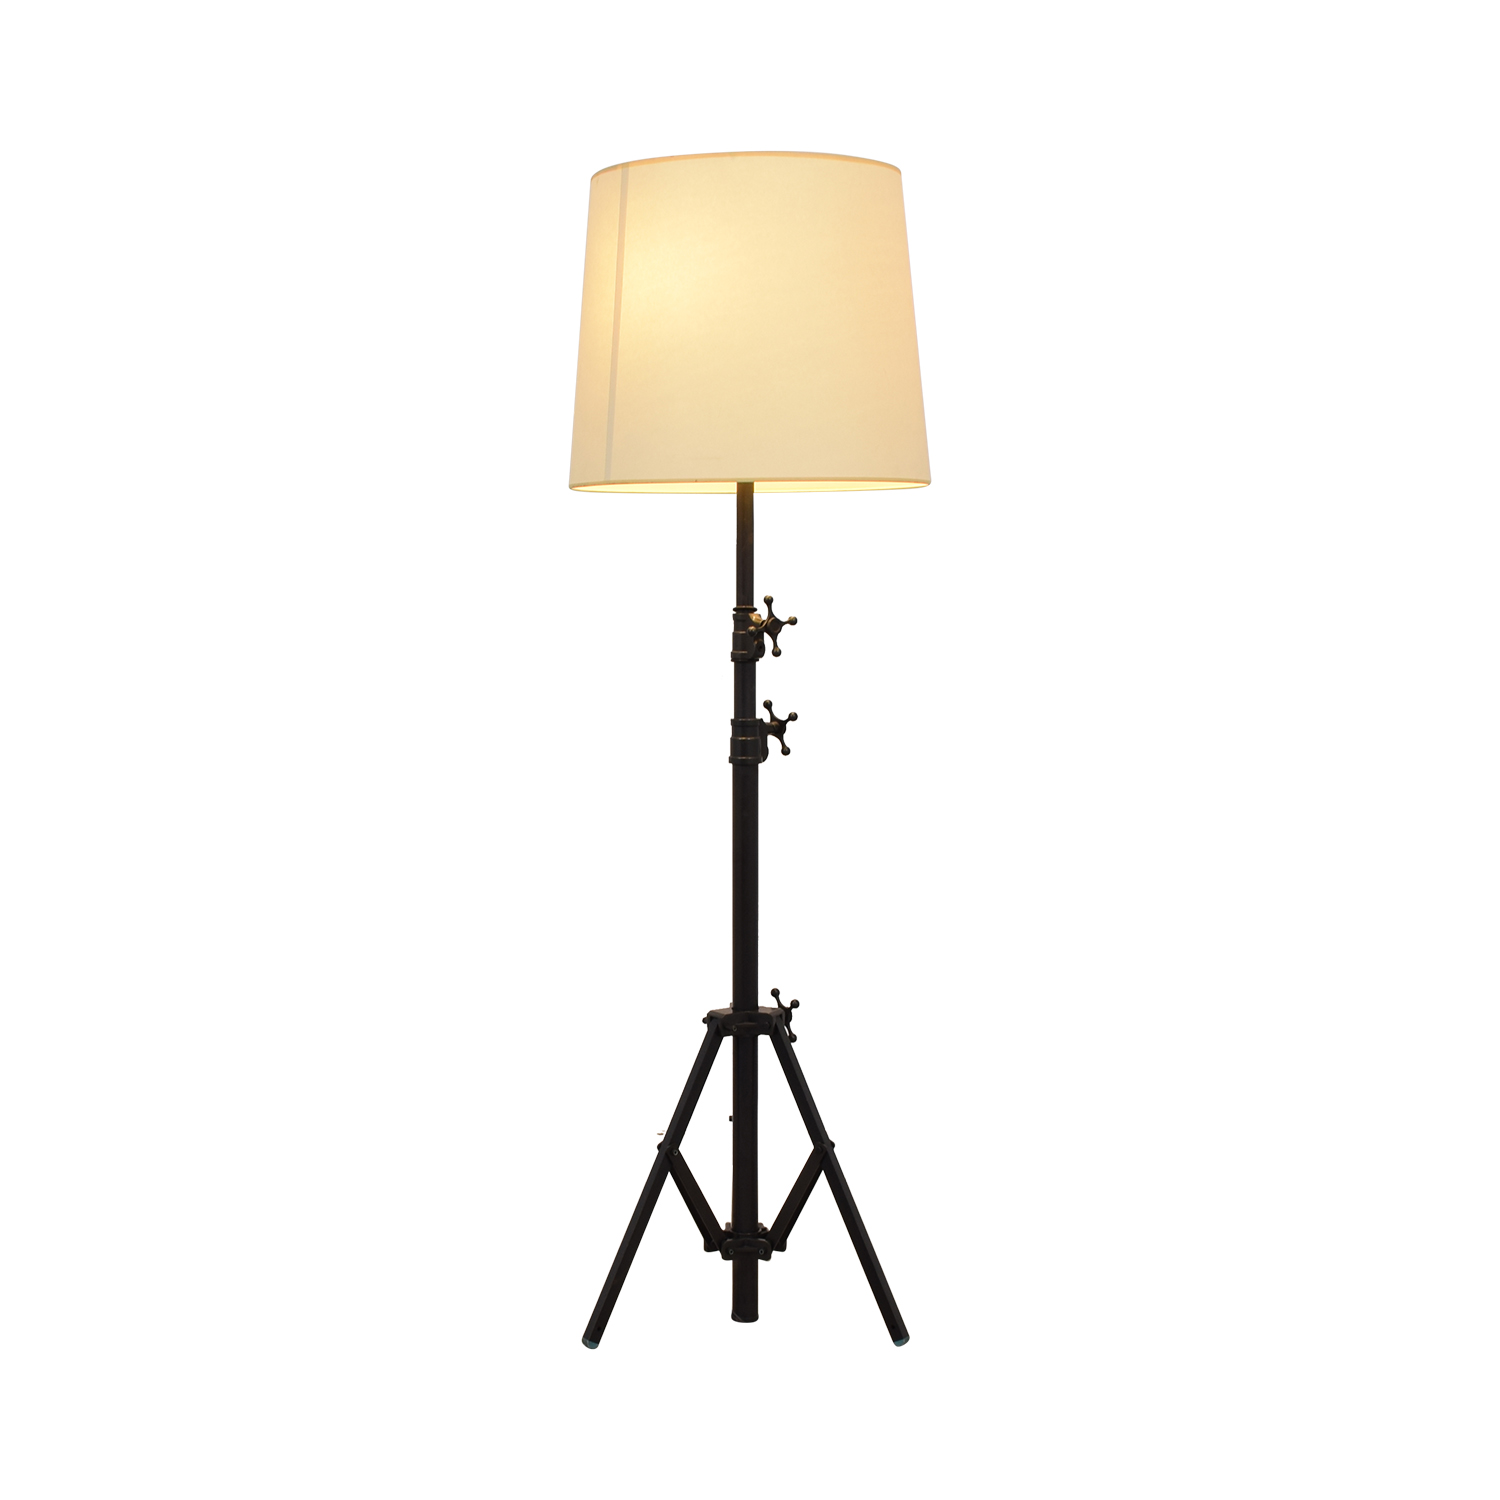 shop Lillian August Lillian August Tripod Floor Lamp online